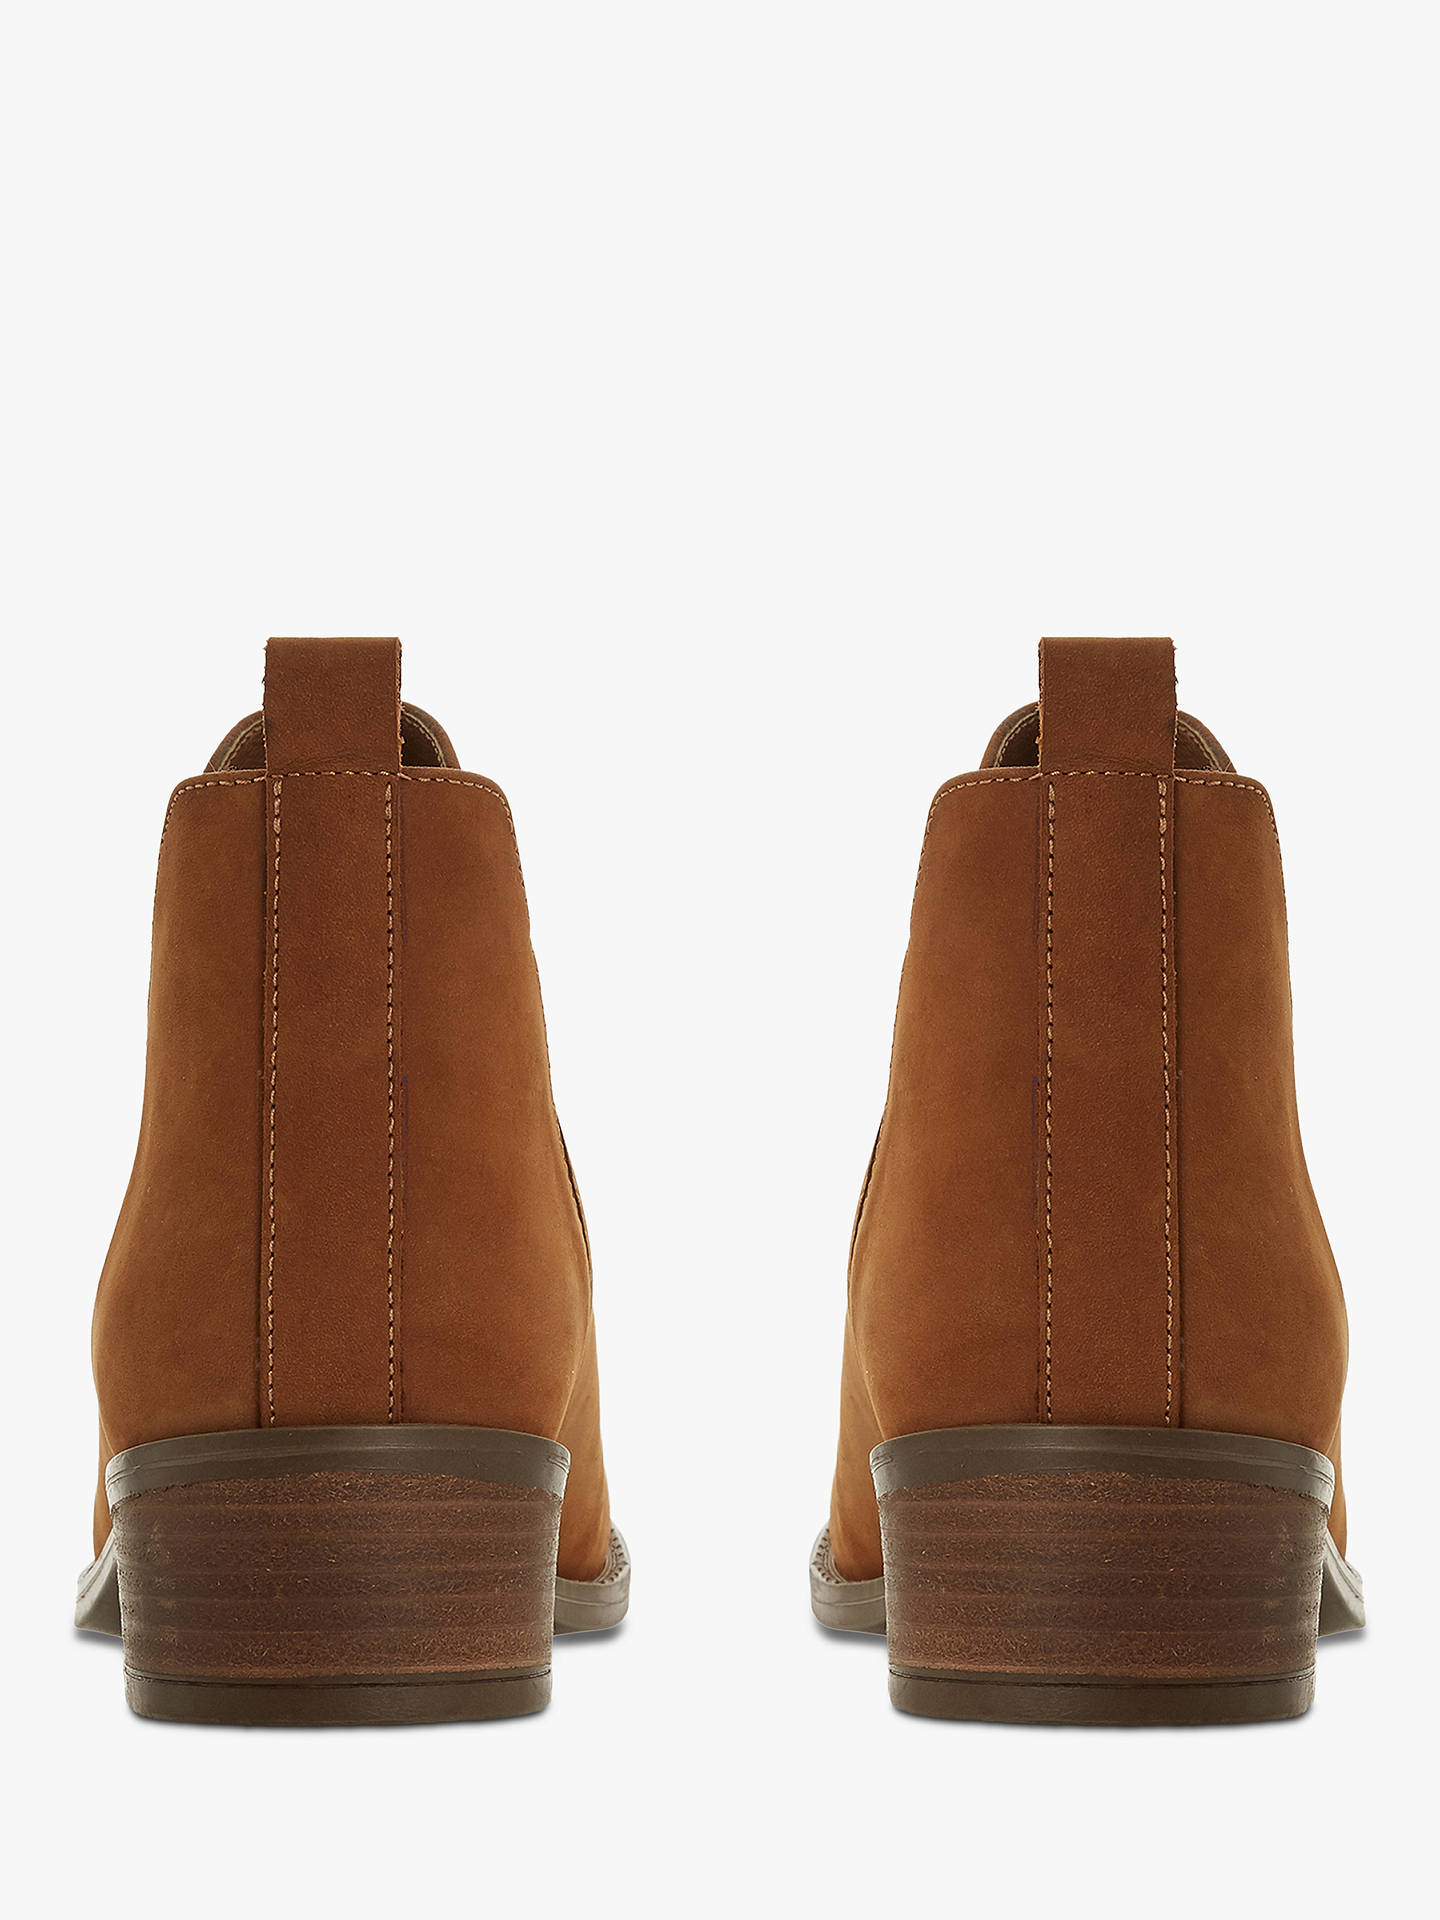 BuySteve Madden Dante Block Heel Ankle Boots, Taupe Leather, 7 Online at johnlewis.com